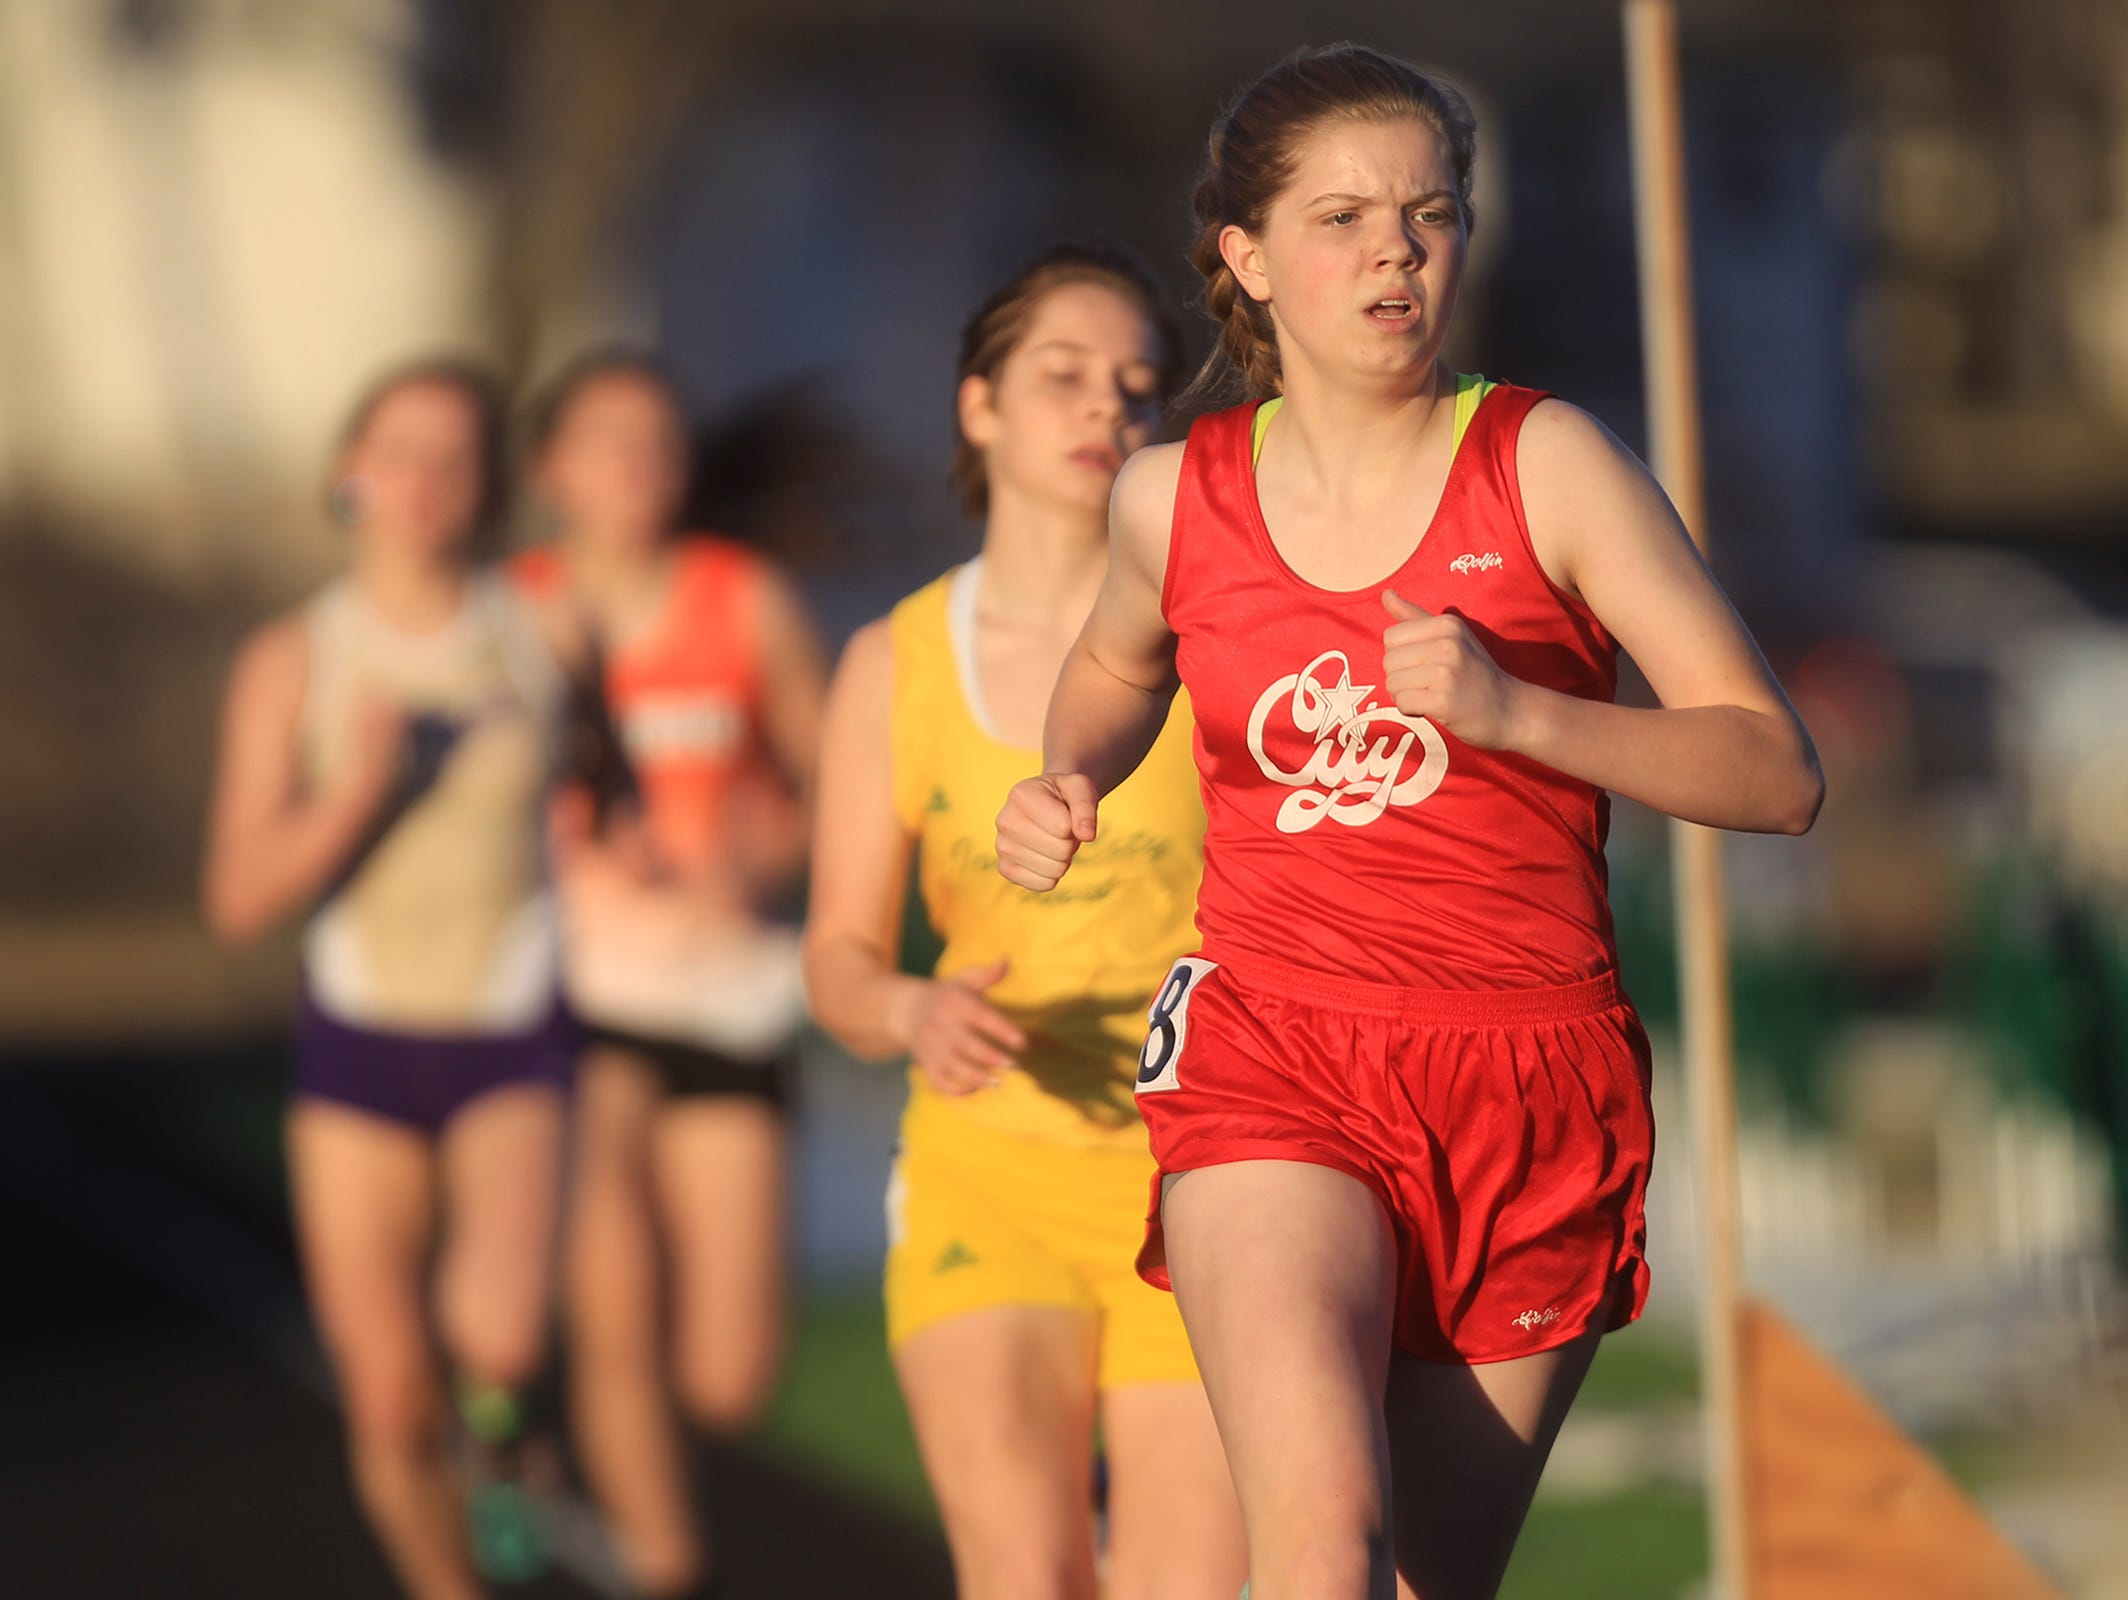 City High's Addy Smith competes in the 800 meter run at the Women of Troy Relays at West High on Tuesday, March 31, 2015. David Scrivner / Iowa City Press-Citizen